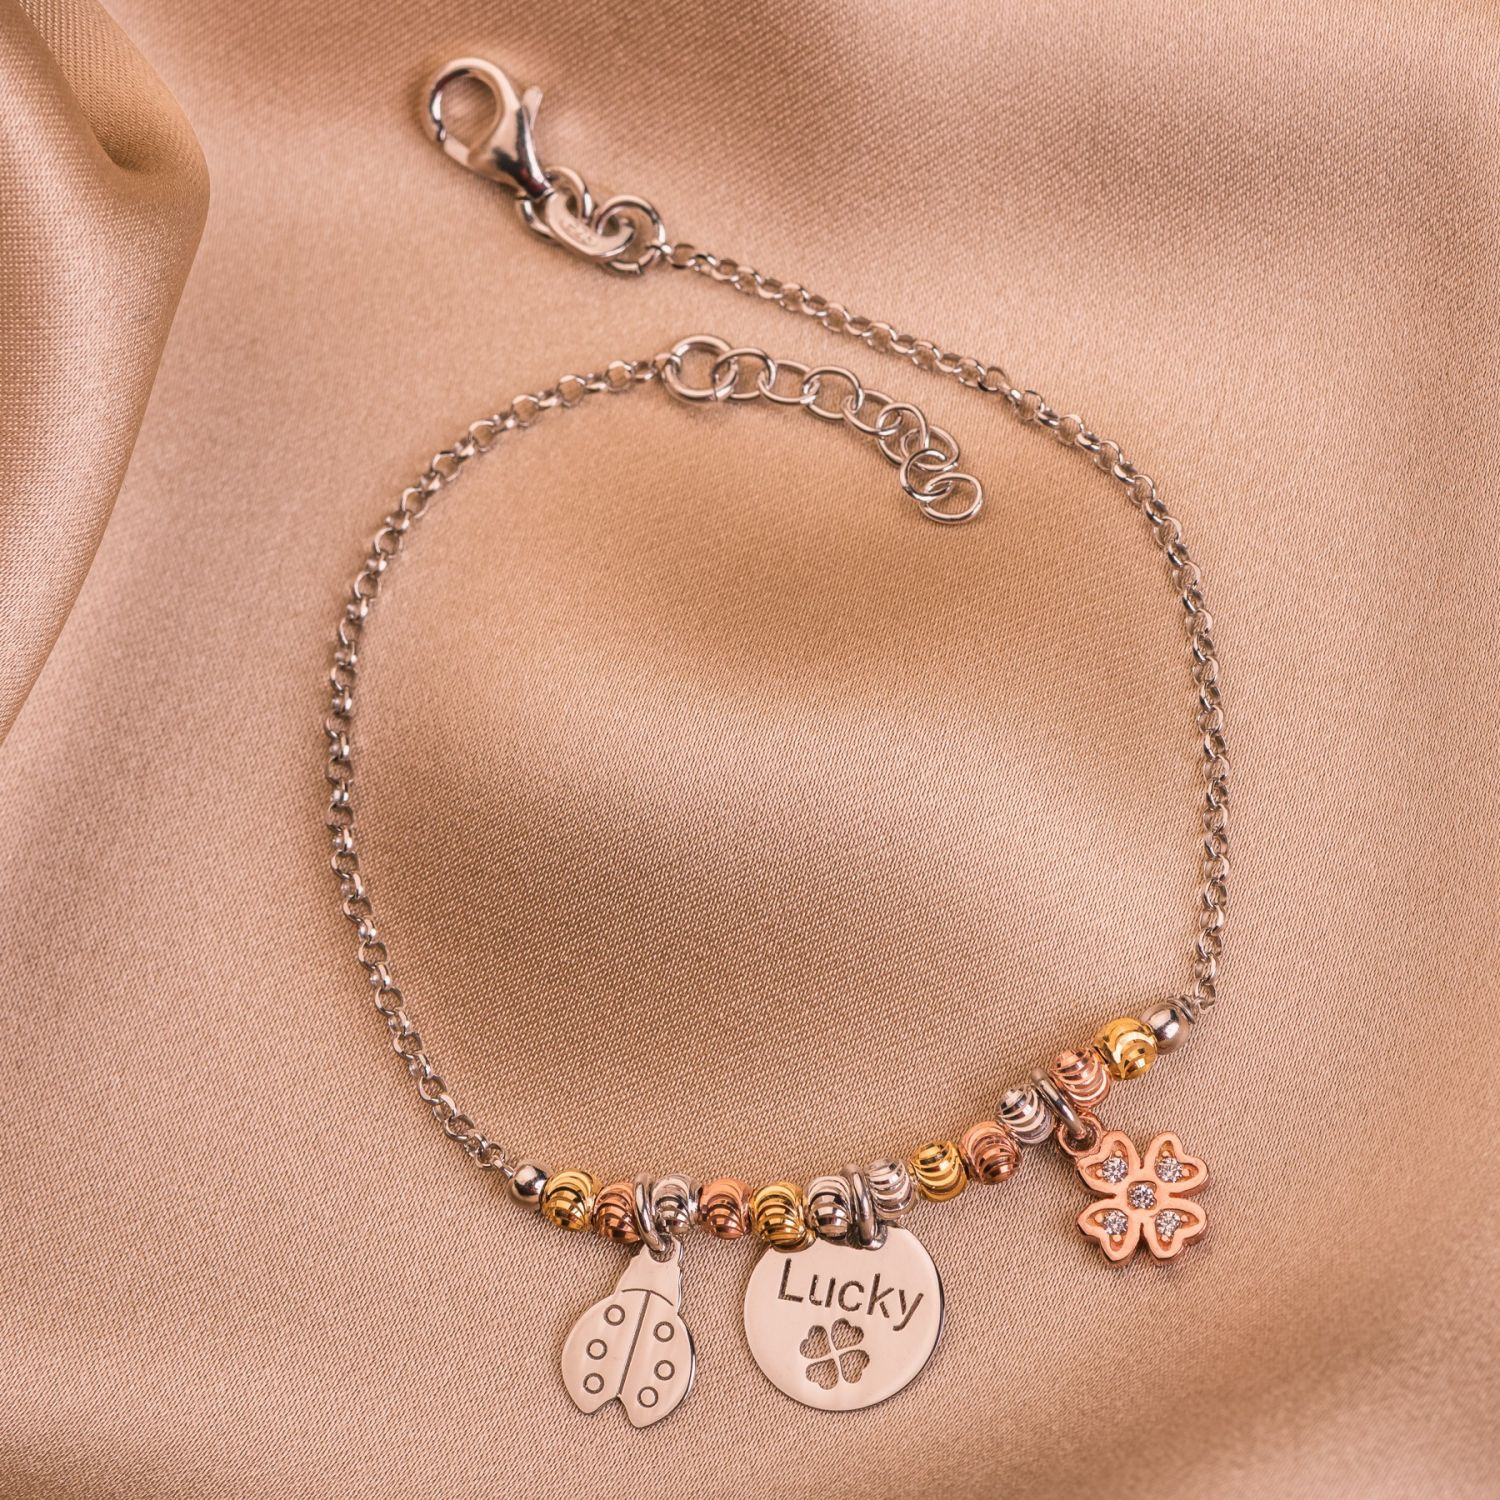 Sterling Silver Bracelet Lucky Charms